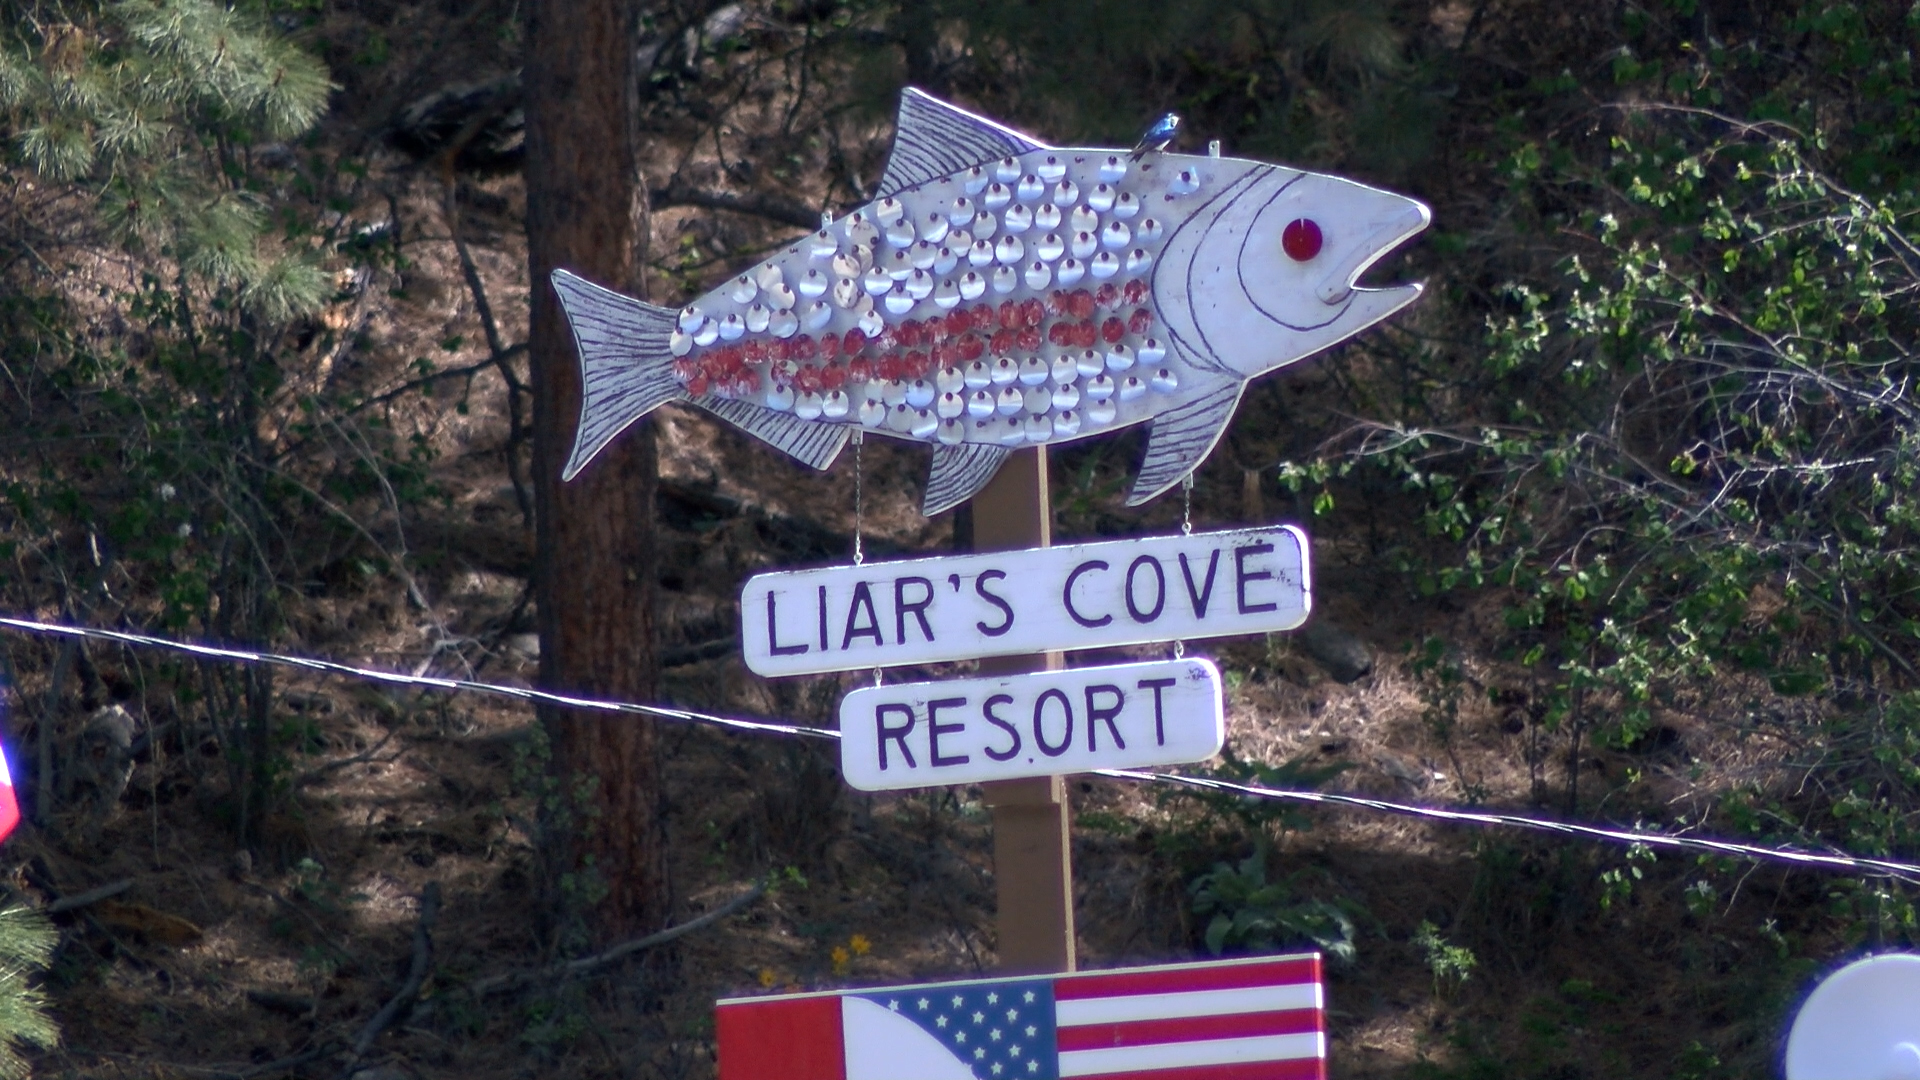 liars cove jpeg00303